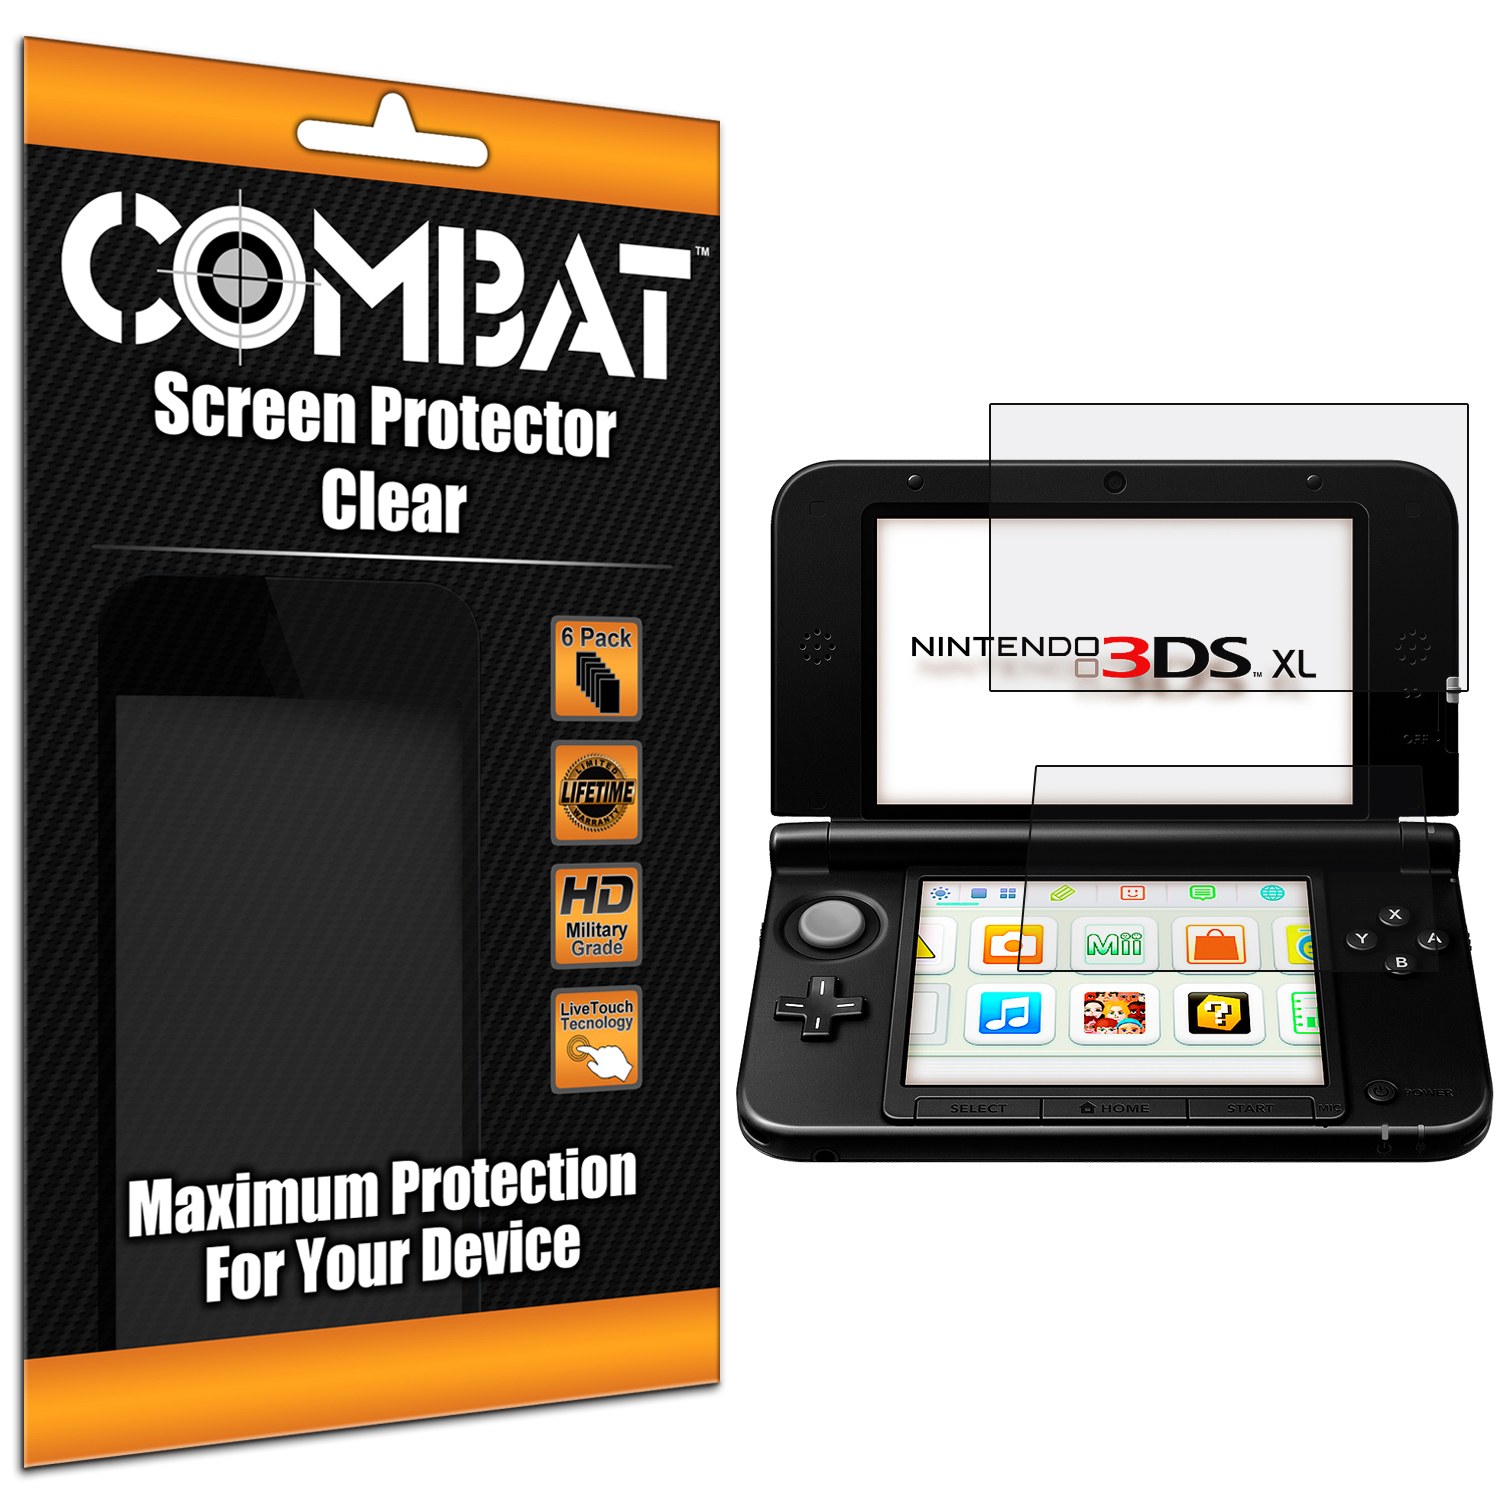 Nintendo 3DS XL Combat 6 Pack HD Clear Screen Protector